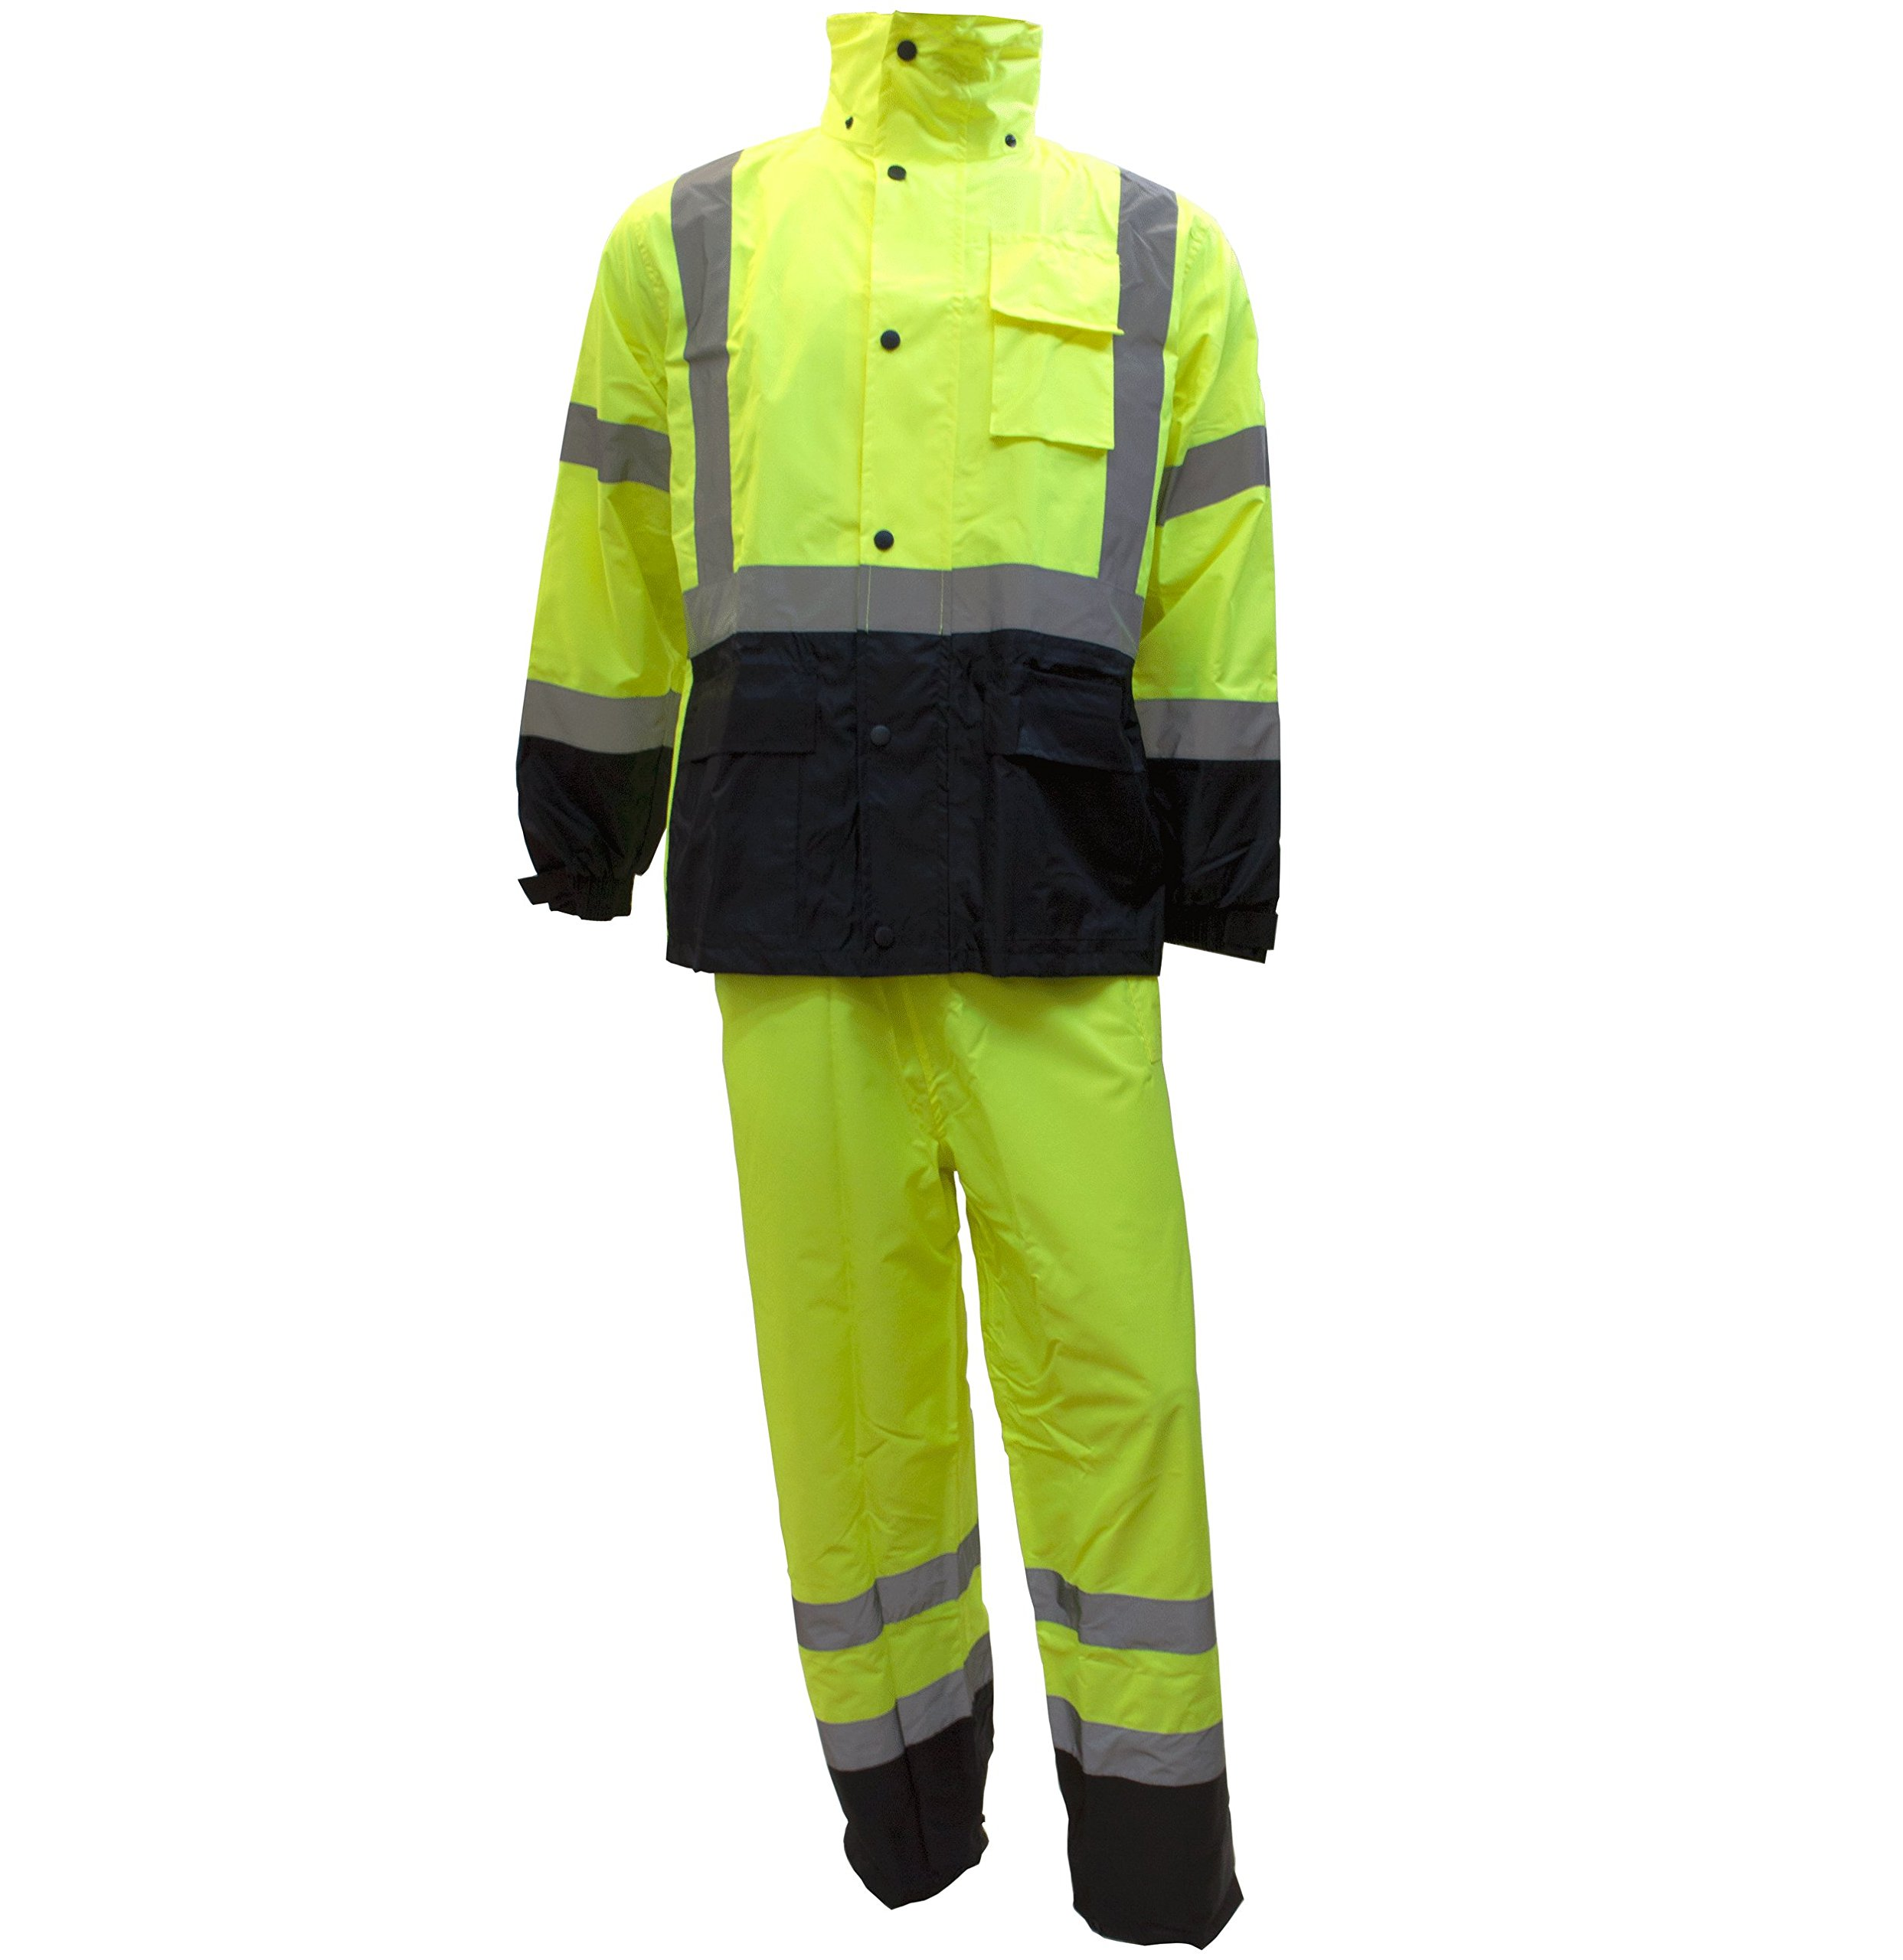 RK Safety Class 3 Rain suit, Jacket, Pants High Visibility Reflective Black Bottom RW-CLA3-LM11 (Large, Lime) by New York Hi-Viz Workwear